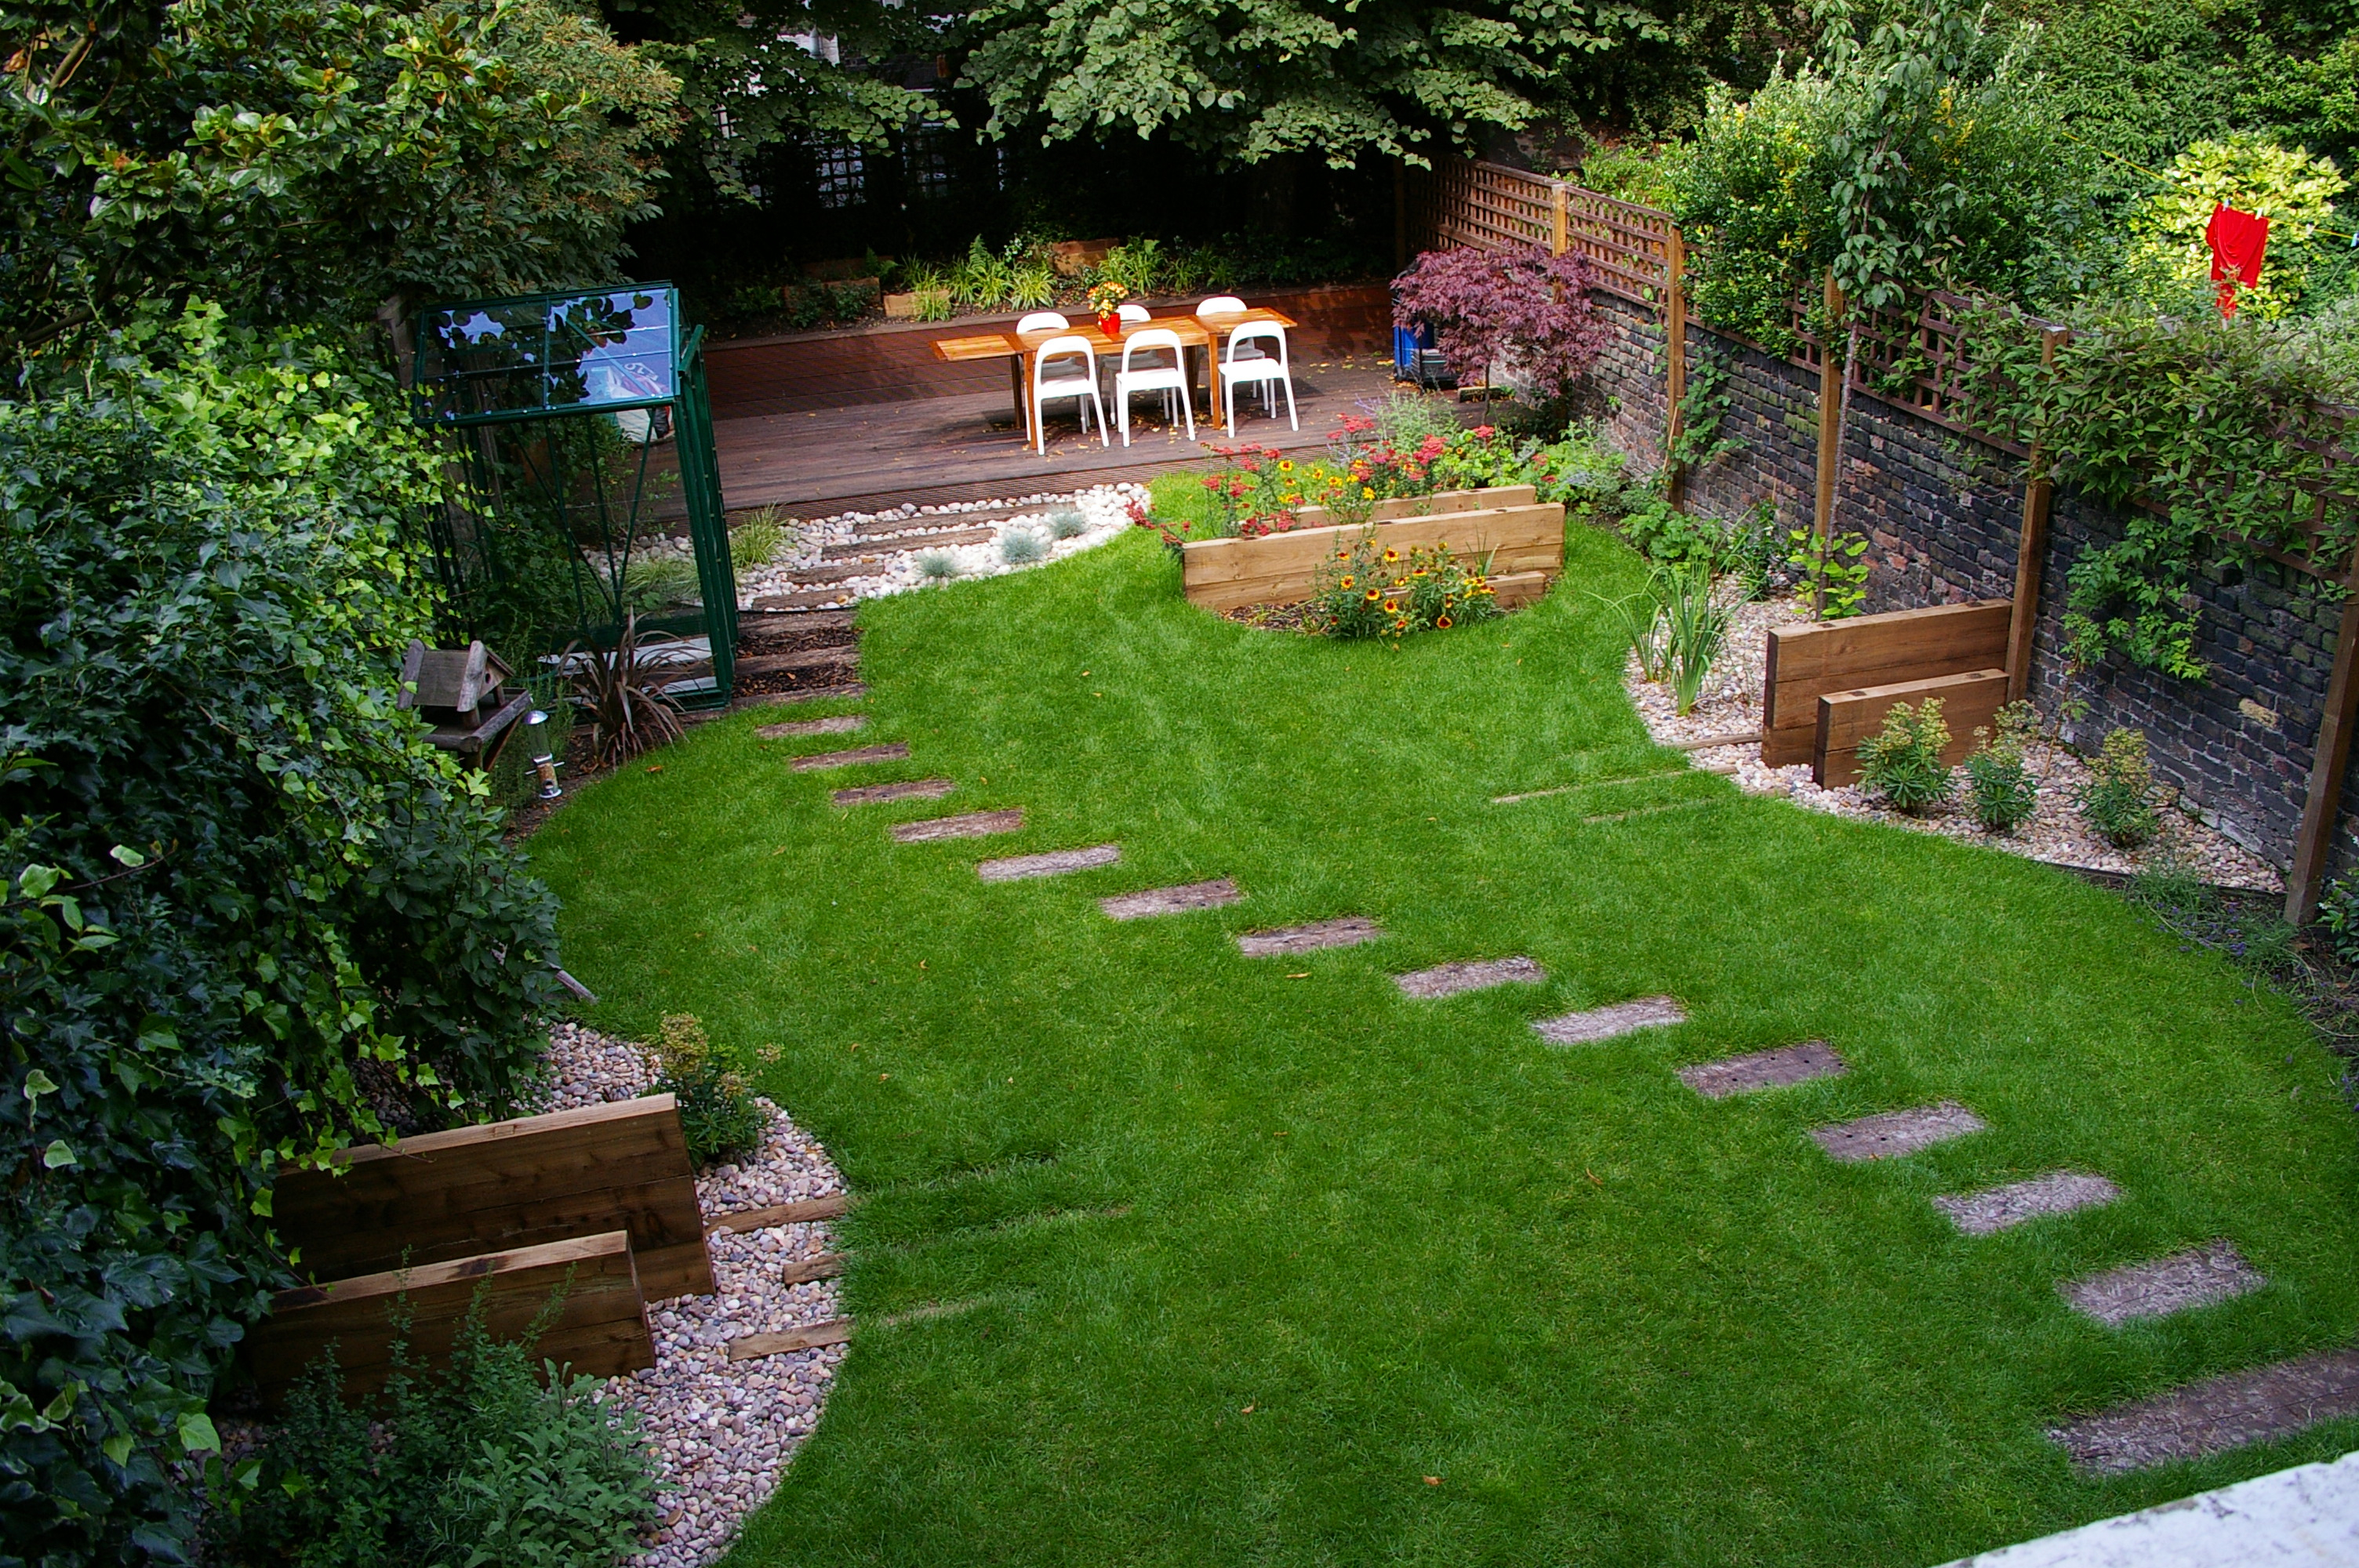 The Best Landscaping Ideas For Backyard Gardening Care inside 15 Genius Initiatives of How to Improve Landscape Designs For Backyards